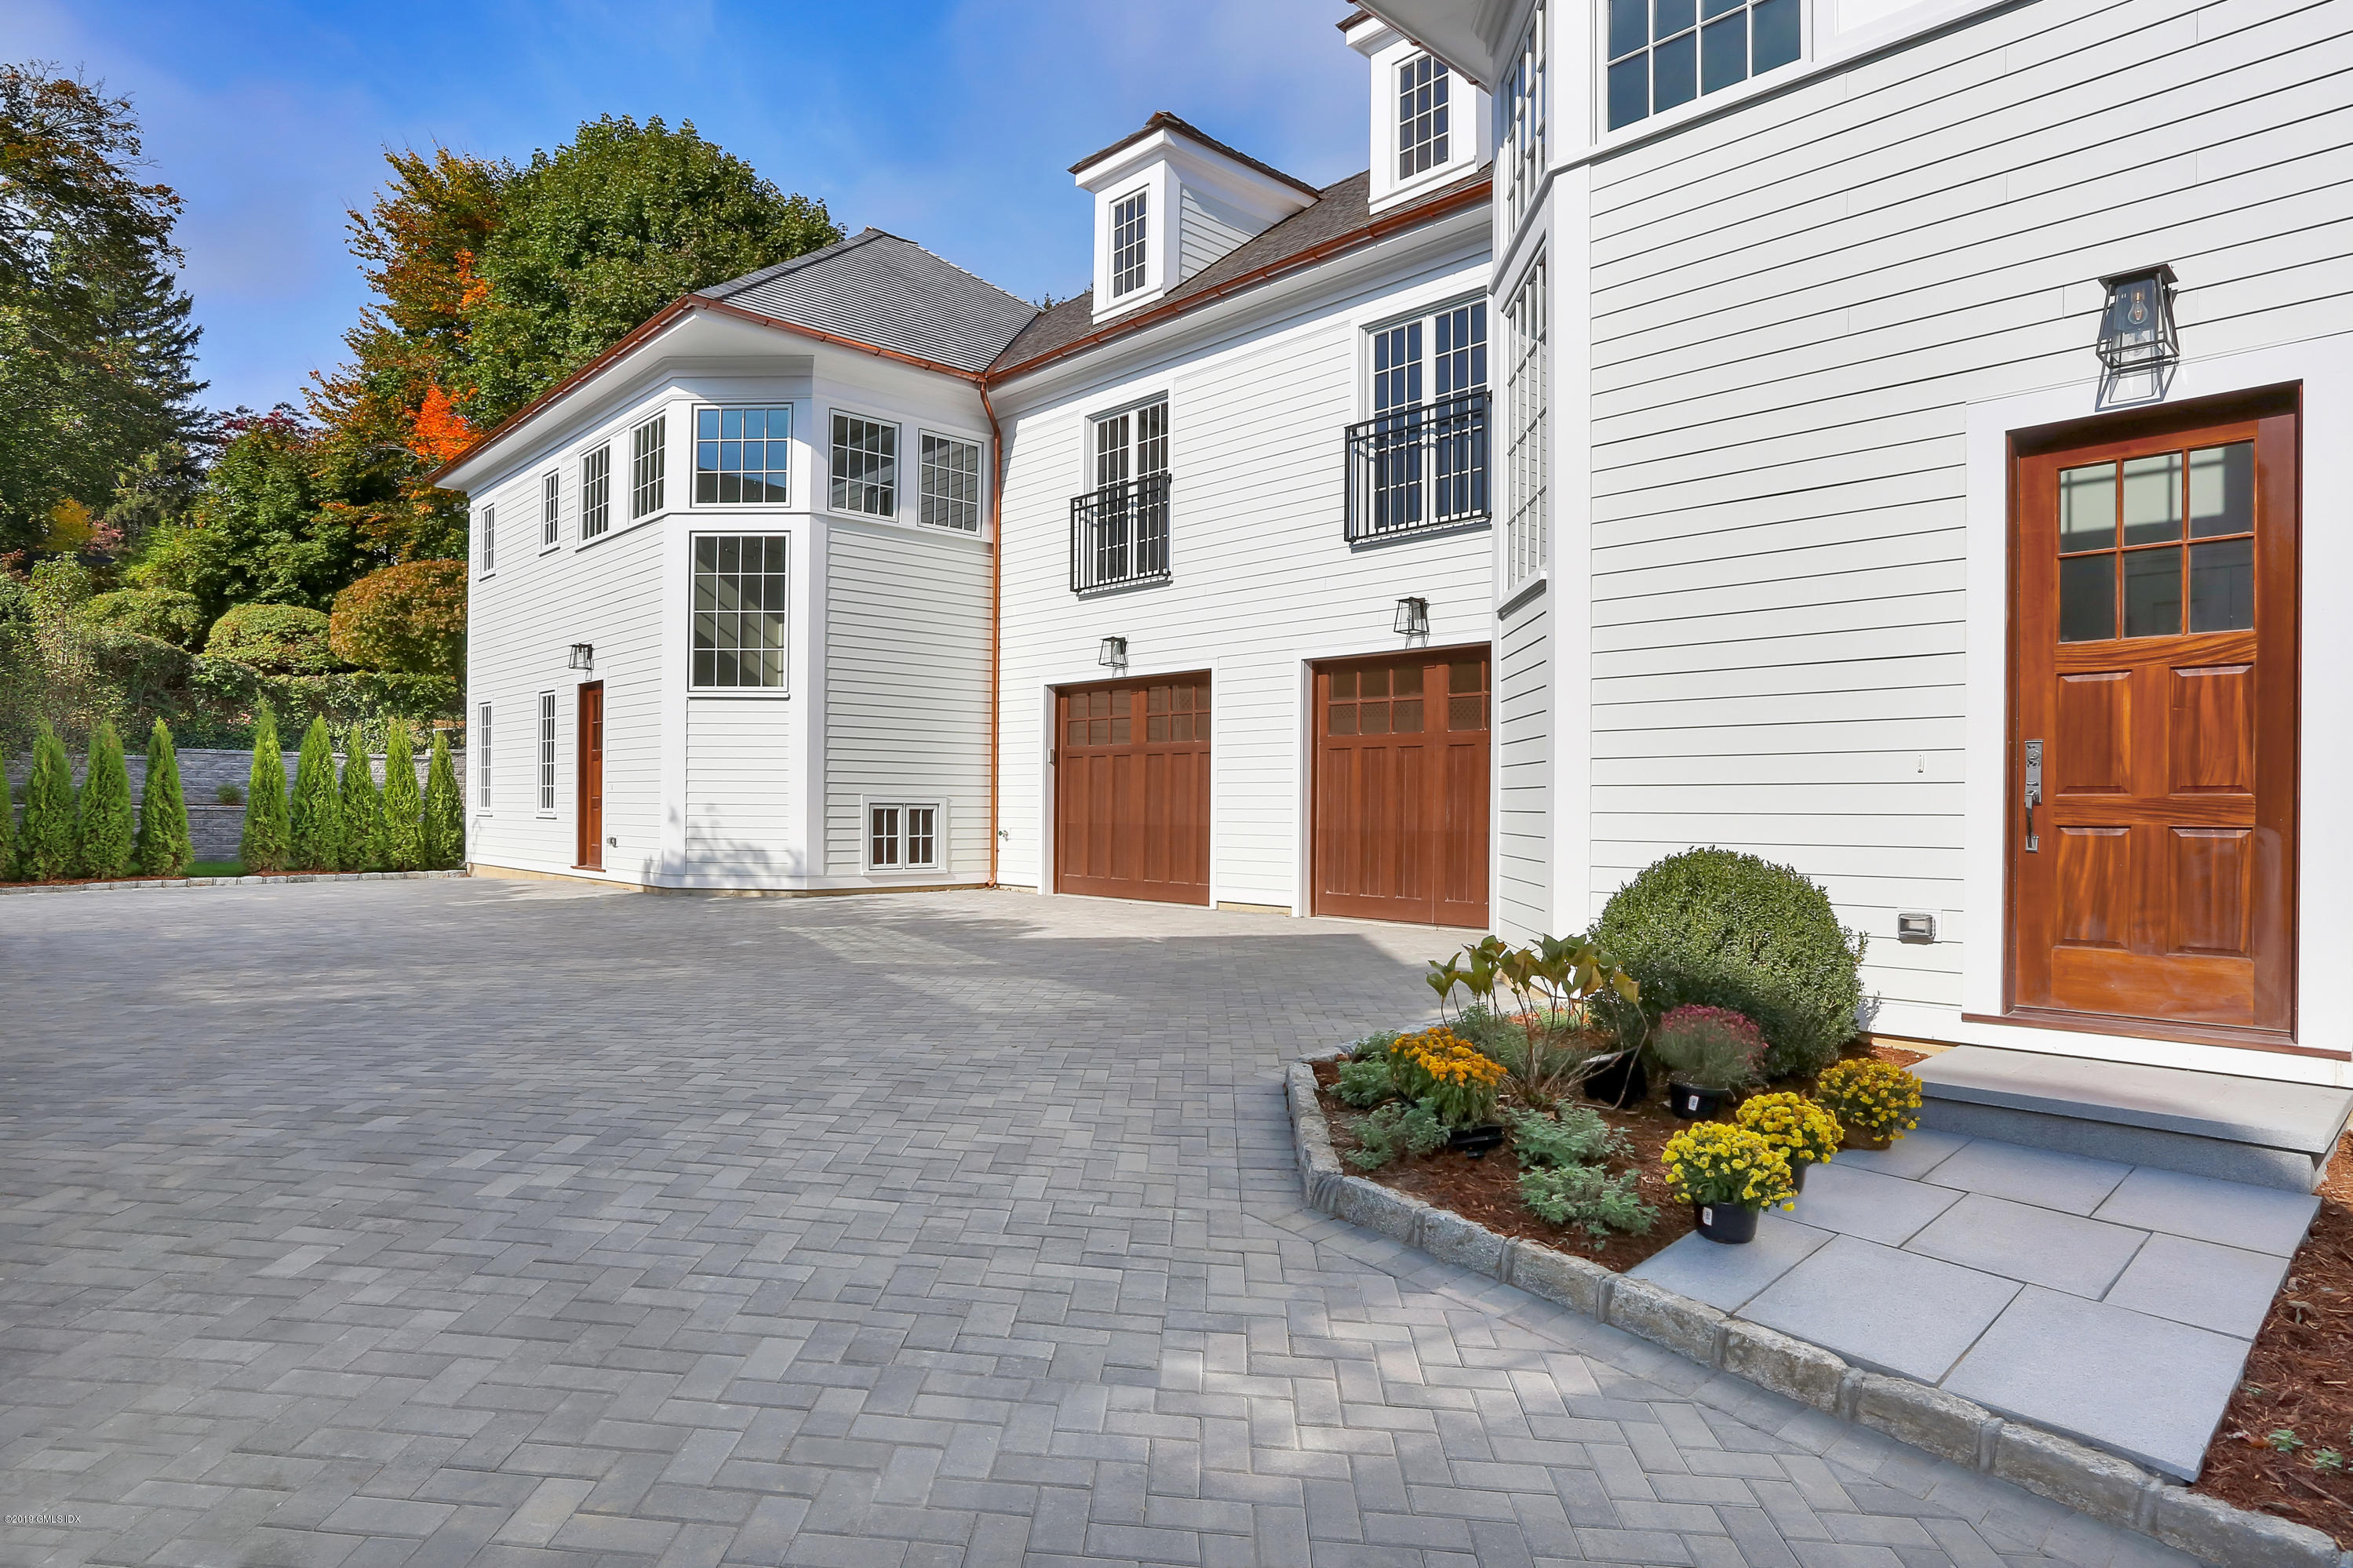 80 Milbank Avenue,Greenwich,Connecticut 06830,4 Bedrooms Bedrooms,4 BathroomsBathrooms,Condominium,Milbank,108324